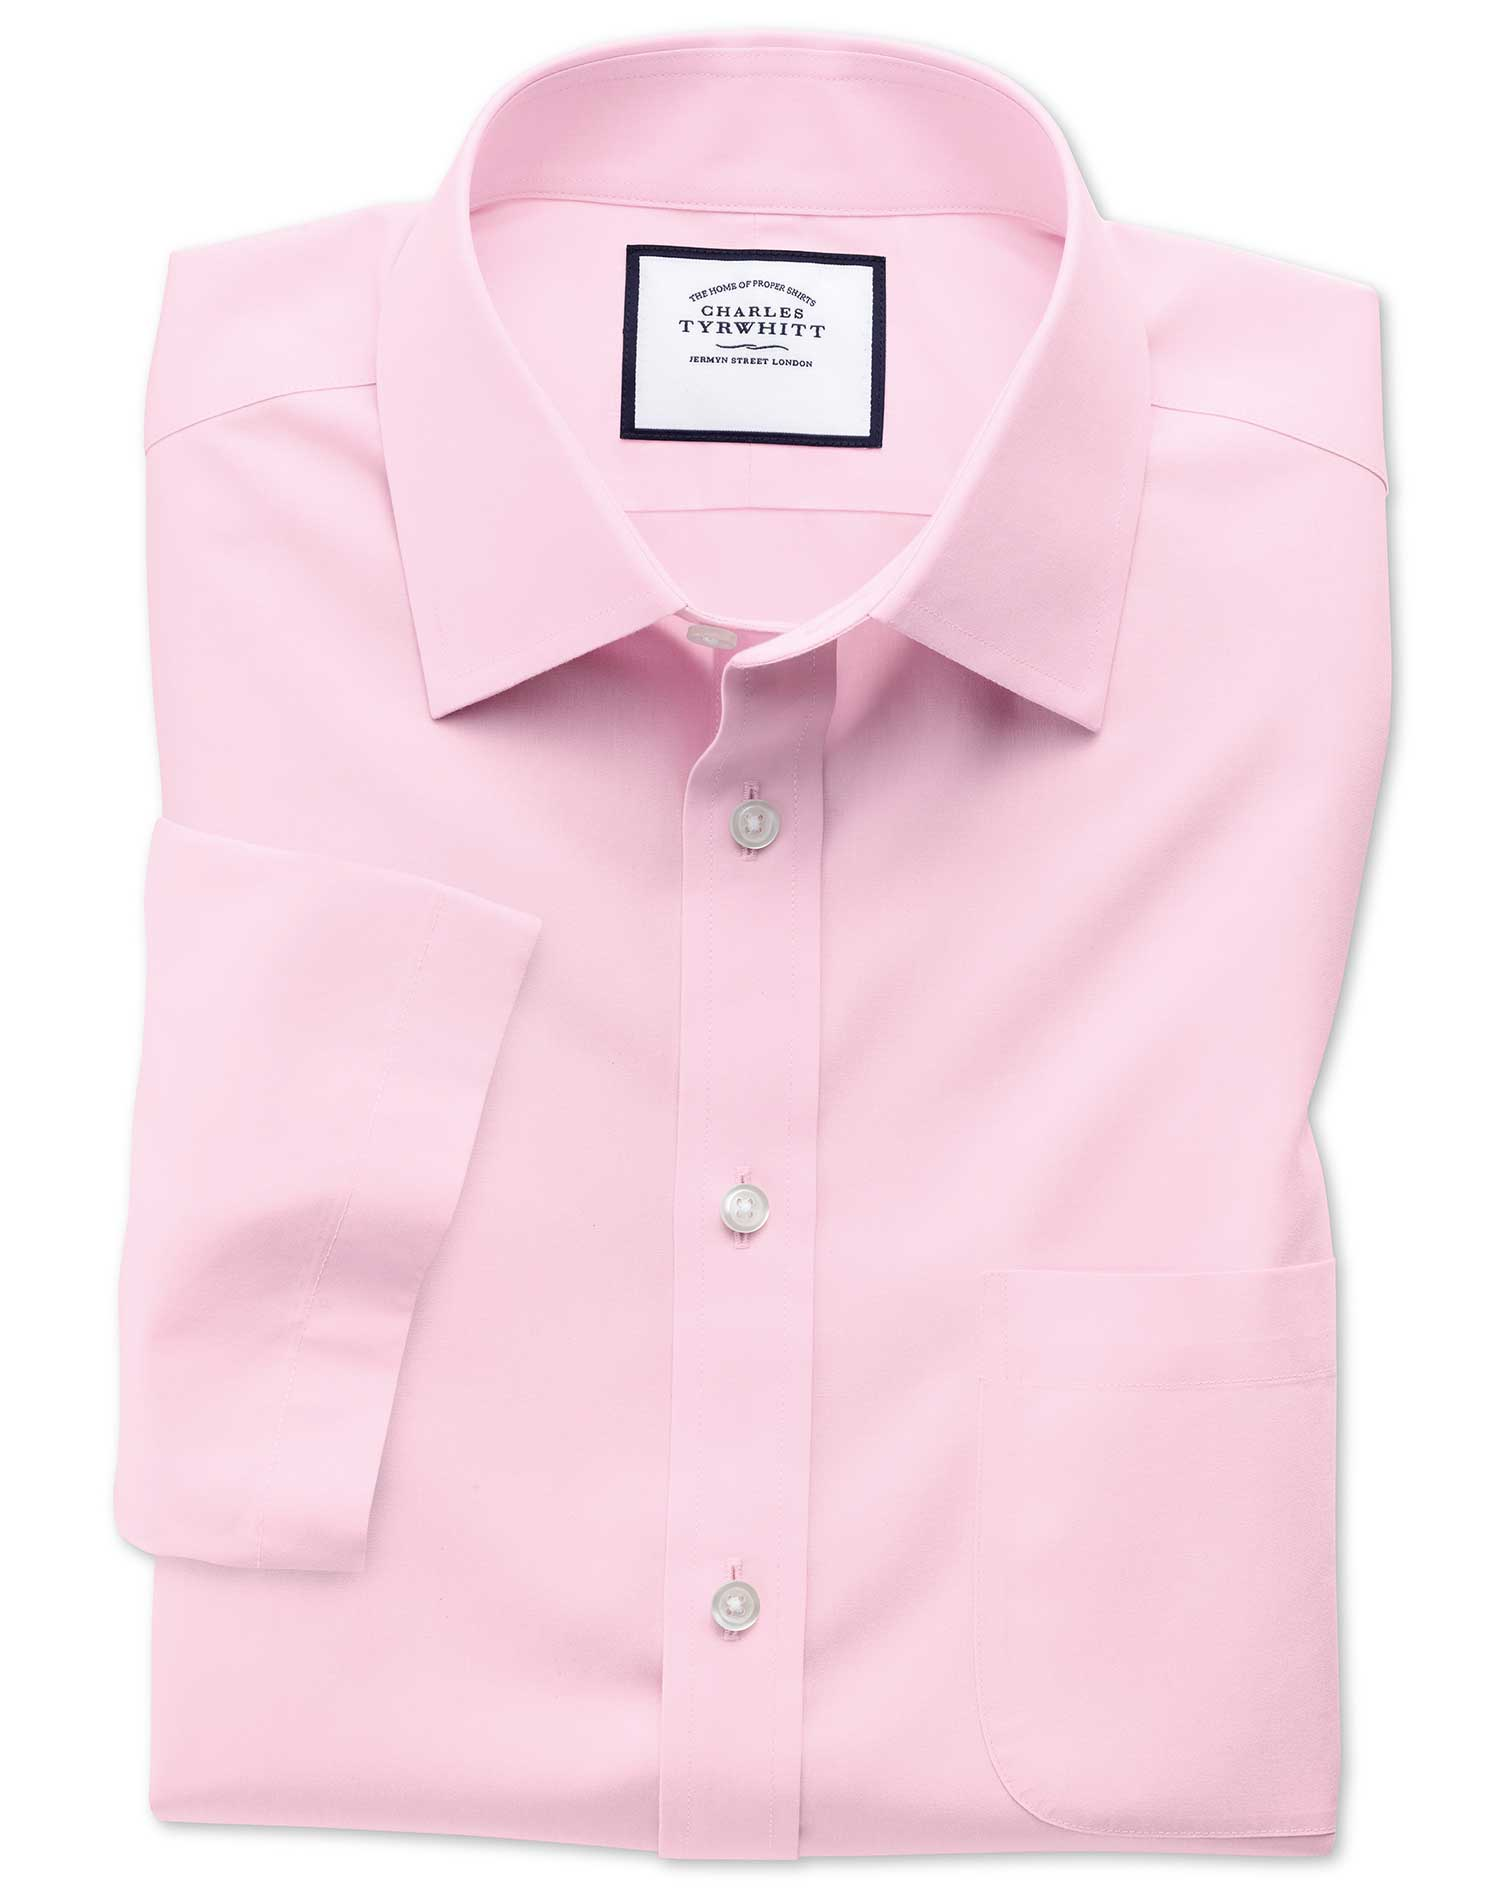 Classic Fit Non-Iron Poplin Short Sleeve Pink Cotton Formal Shirt Size 16.5/Short by Charles Tyrwhitt from Charles Tyrwhitt